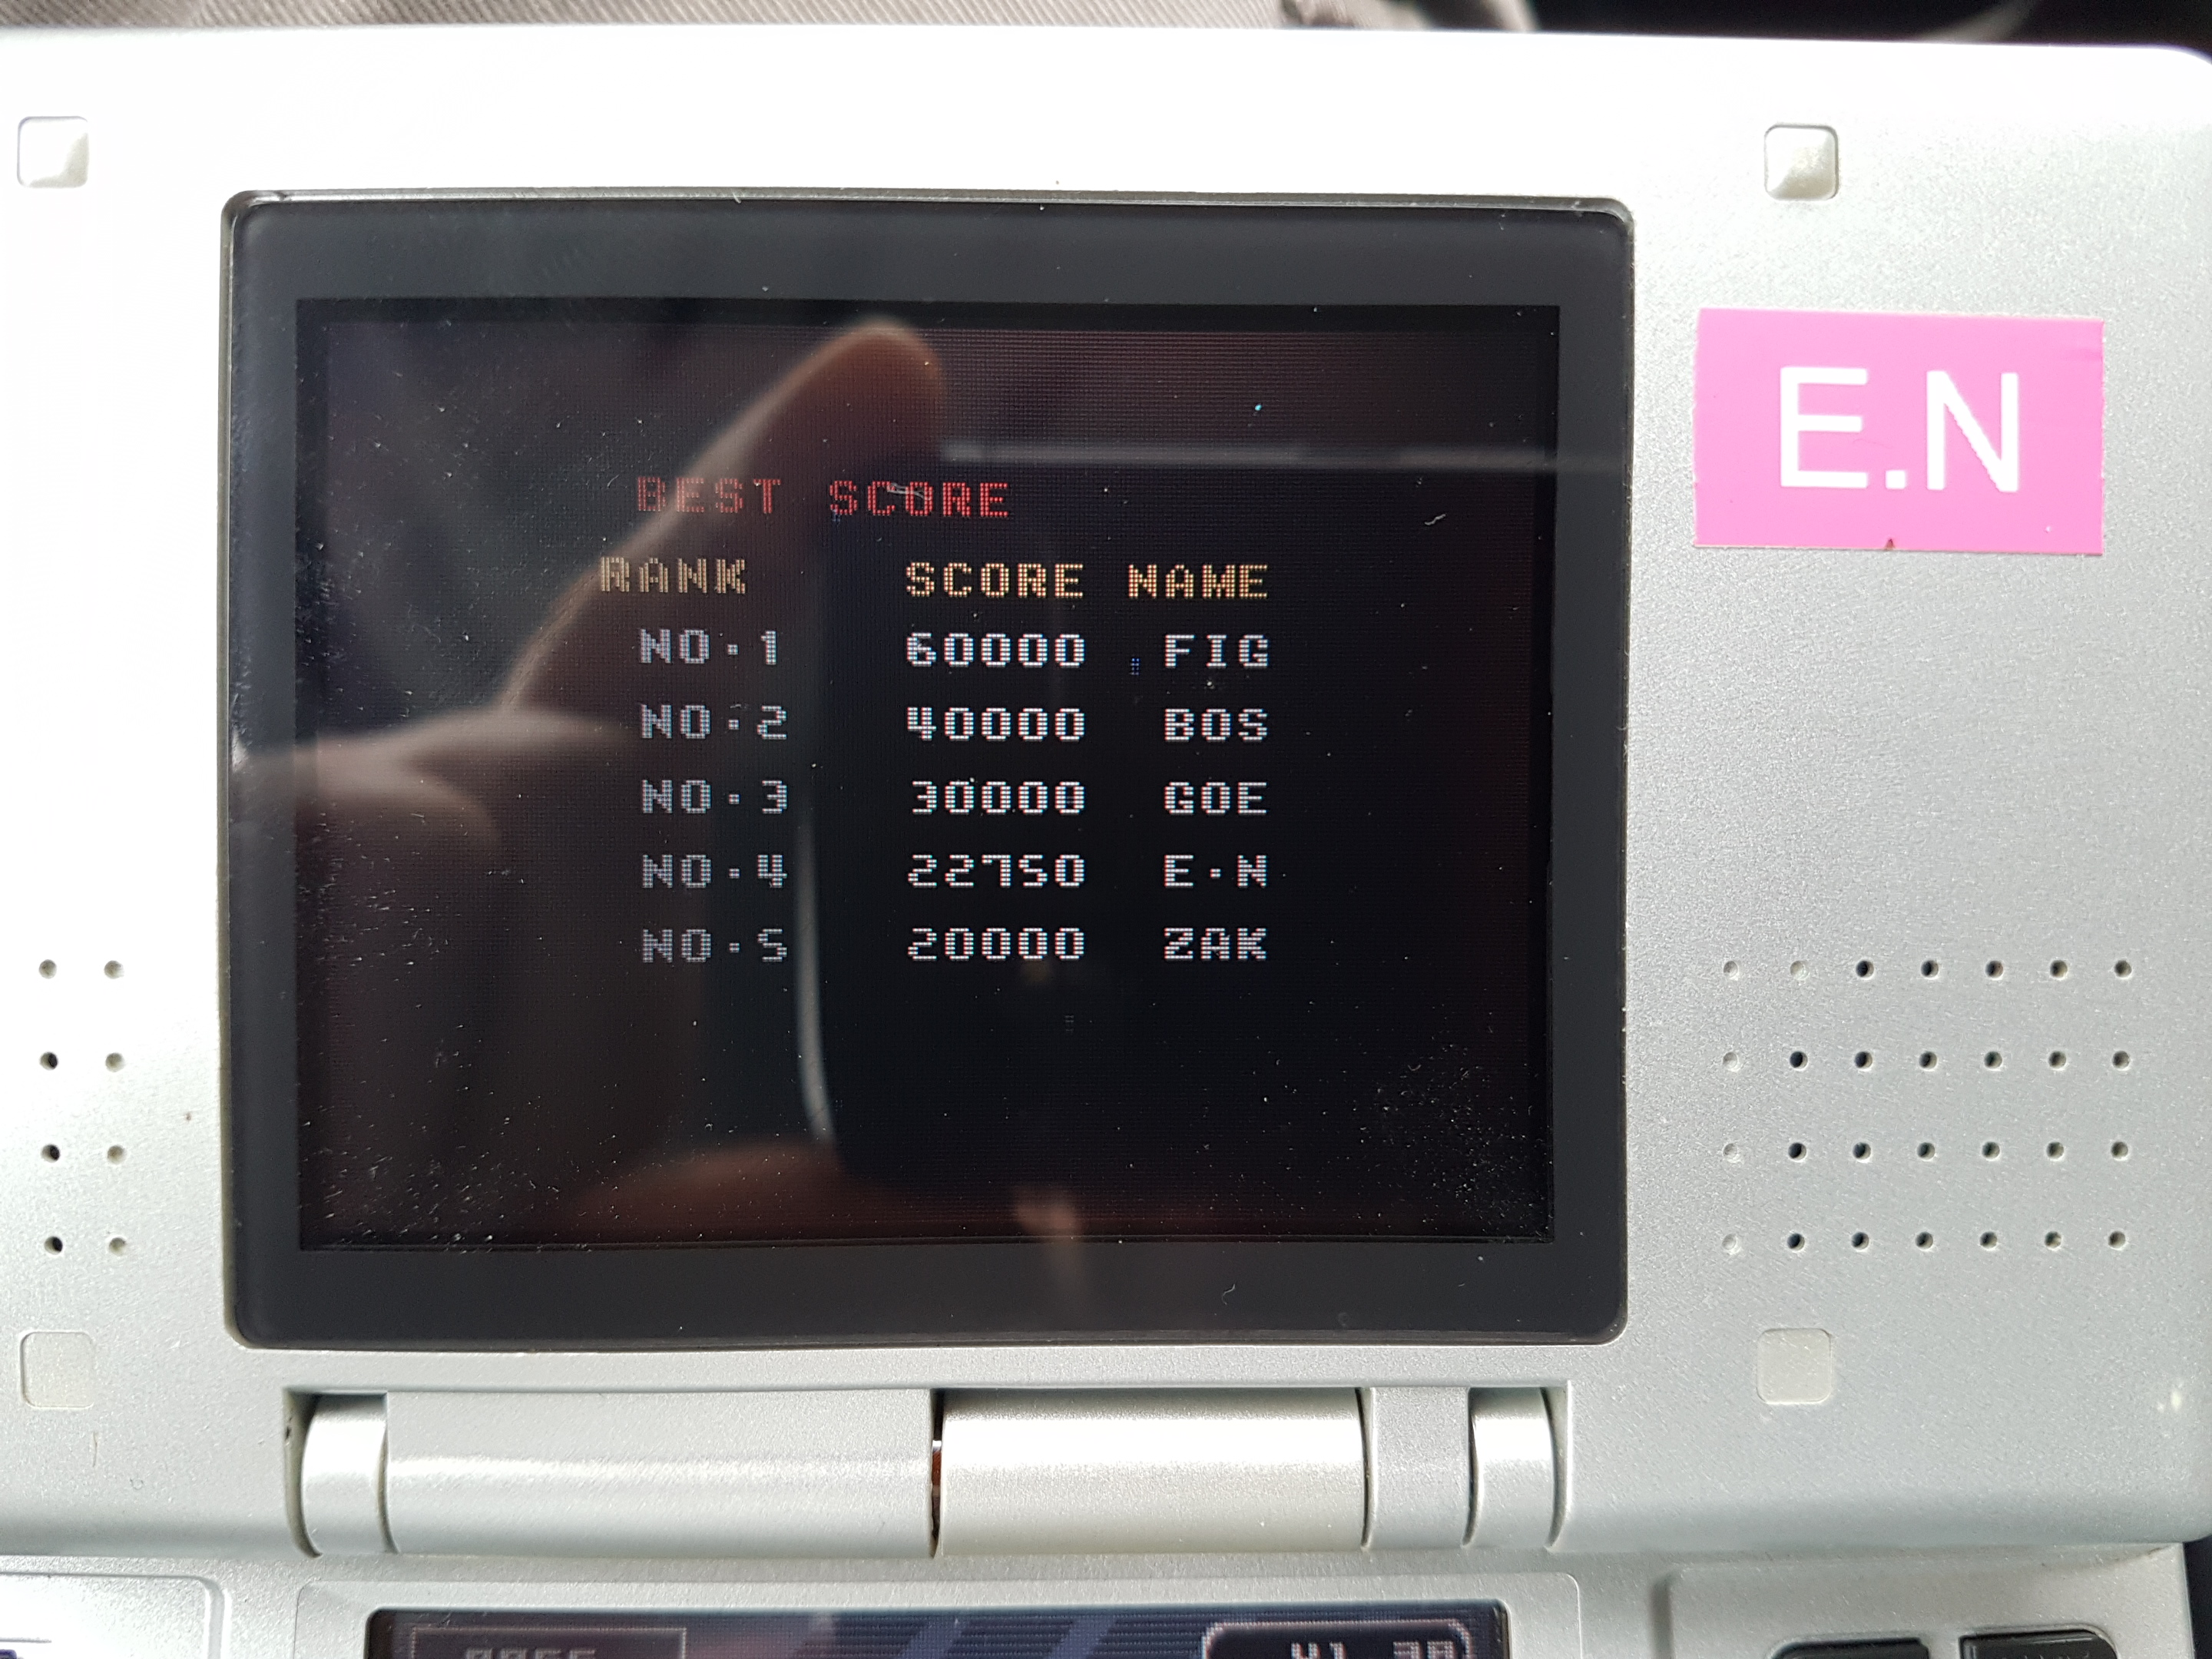 EddieNiceguy: Galaga 2 (Sega Game Gear Emulated) 22,750 points on 2019-01-24 05:54:17